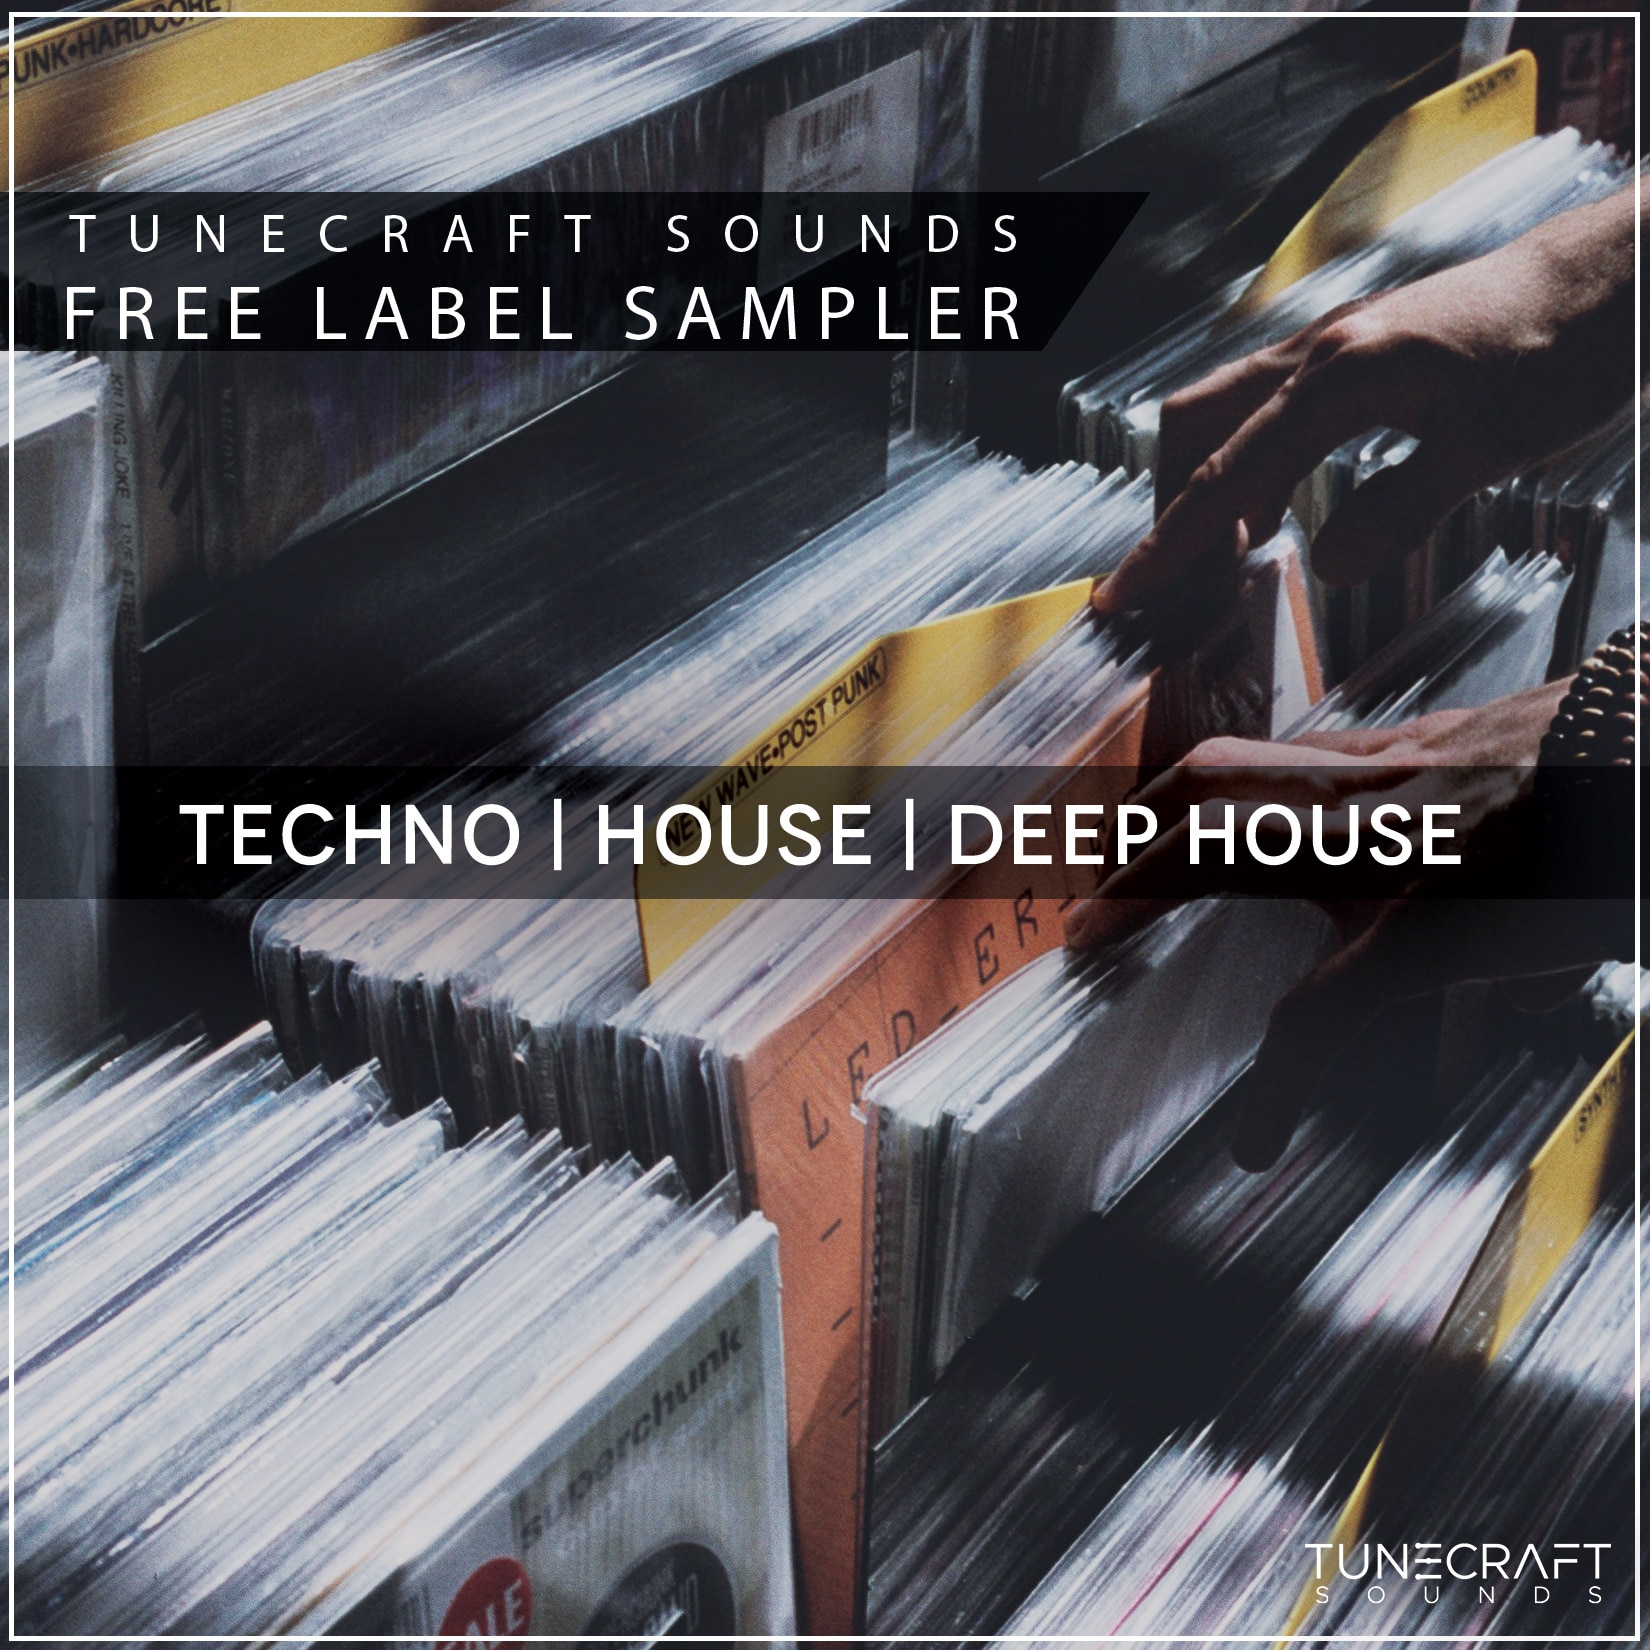 Free-Label-Sampler-Techno-House-Deep-House-Tunecraft-Site-download-free-samples